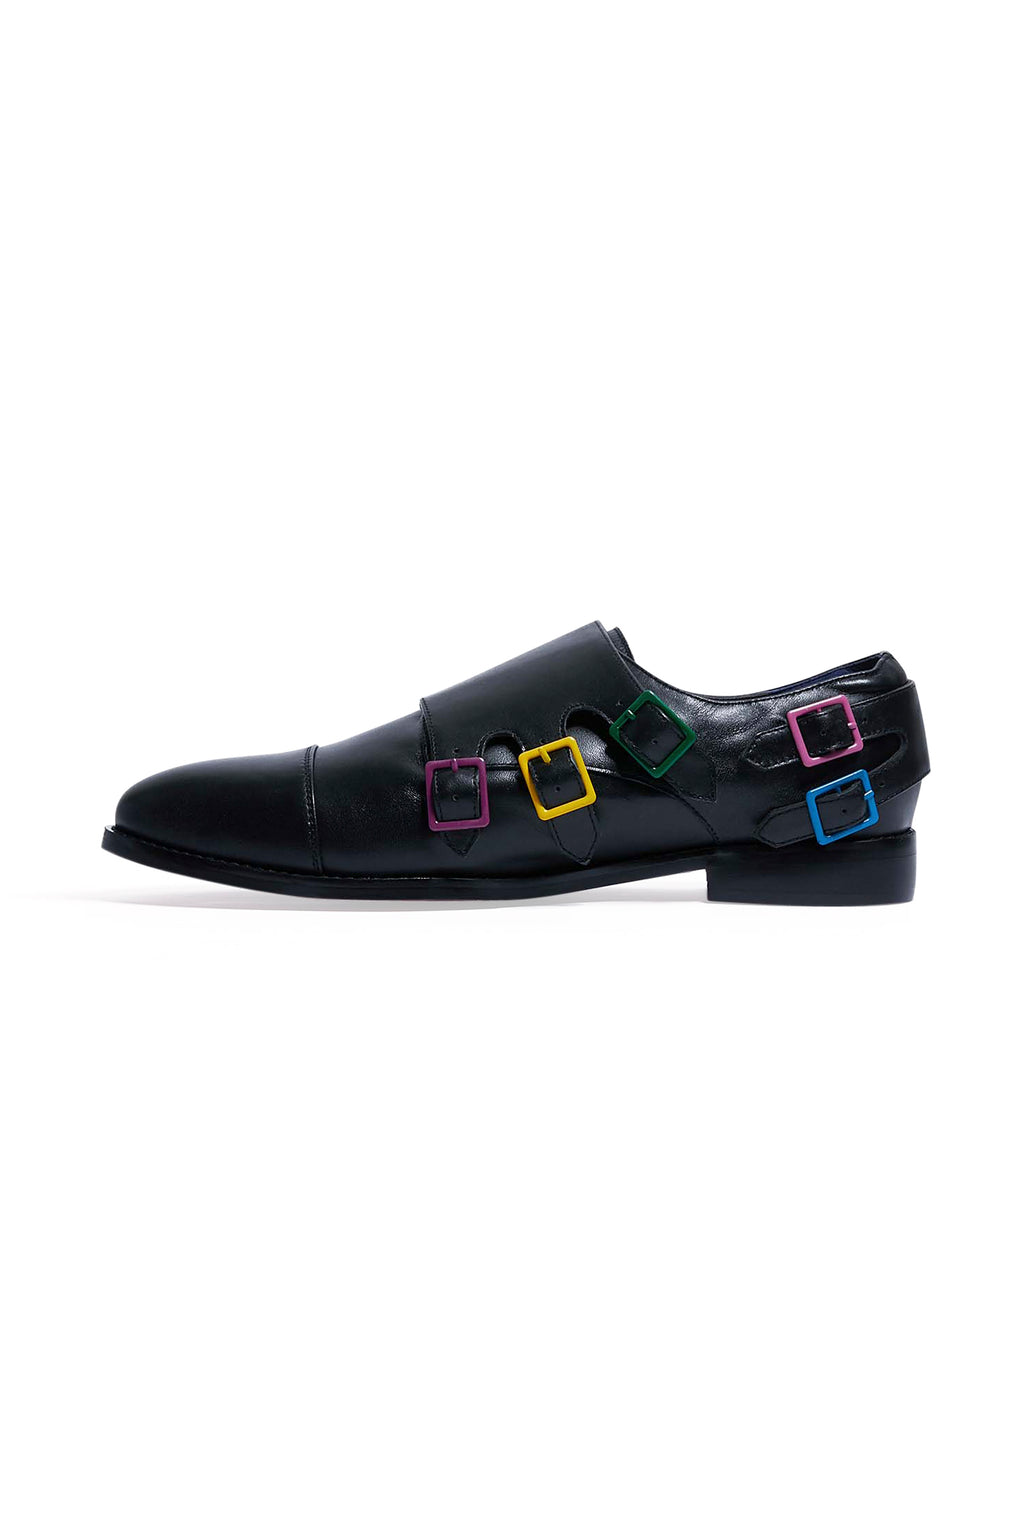 Adrian Mens Leather Buckled Shoes